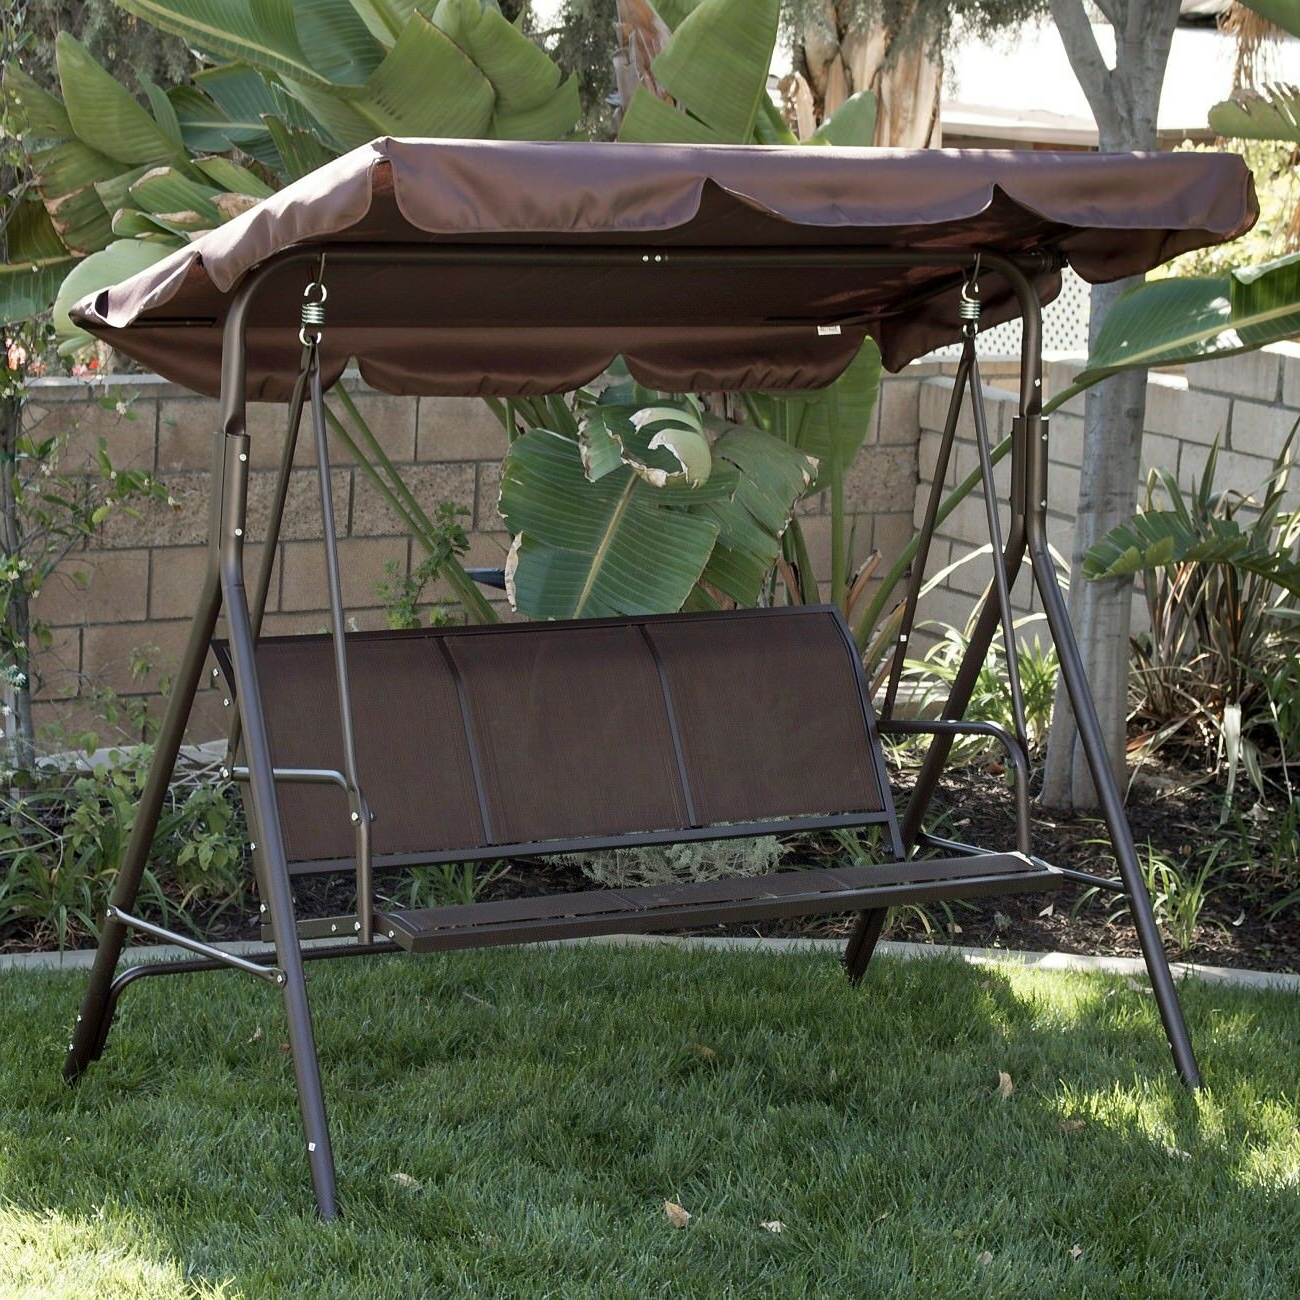 2019 3 Person Patio Swing Canopy Awning Outdoor Hammock Steel Brown Intended For 3 Person Brown Steel Outdoor Swings (View 9 of 30)